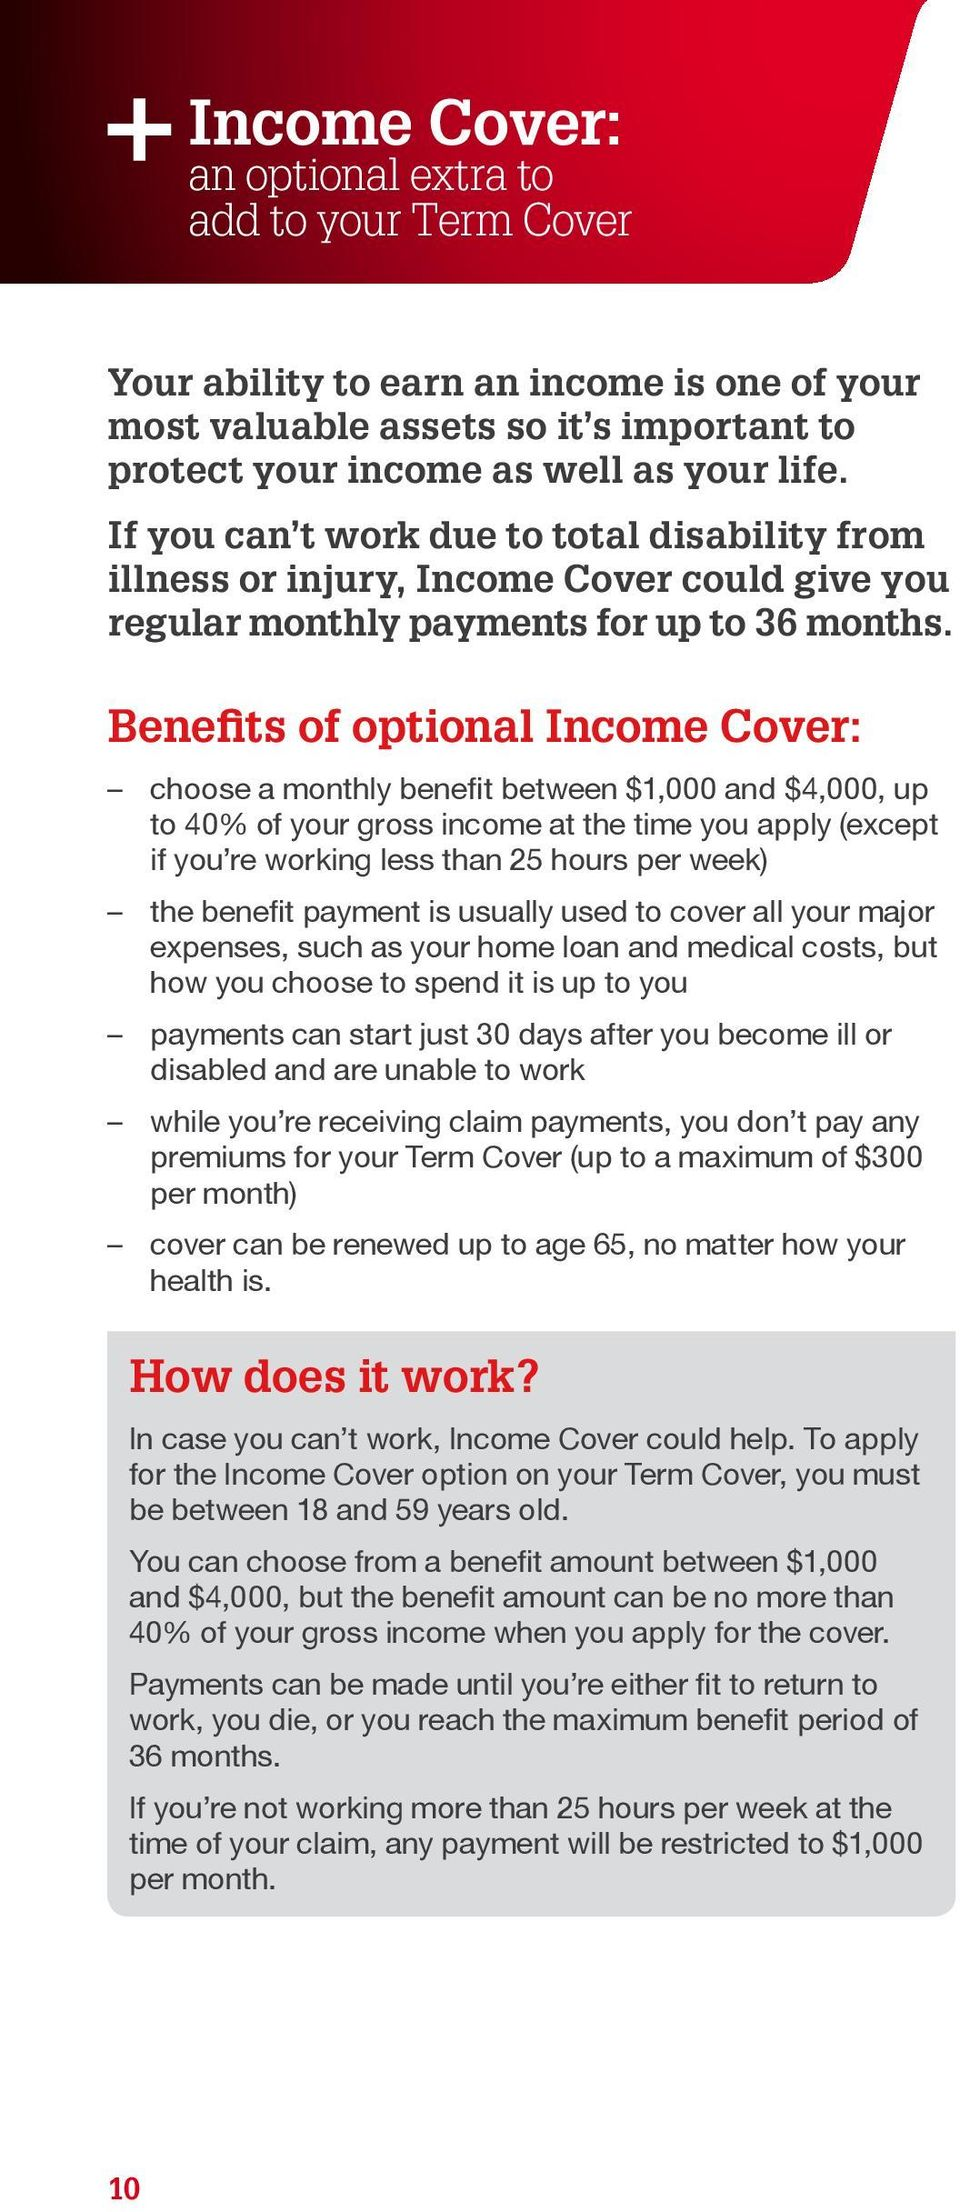 Benefits of optional Income Cover: choose a monthly benefit between $1,000 and $4,000, up to 40% of your gross income at the time you apply (except if you re working less than 25 hours per week) the